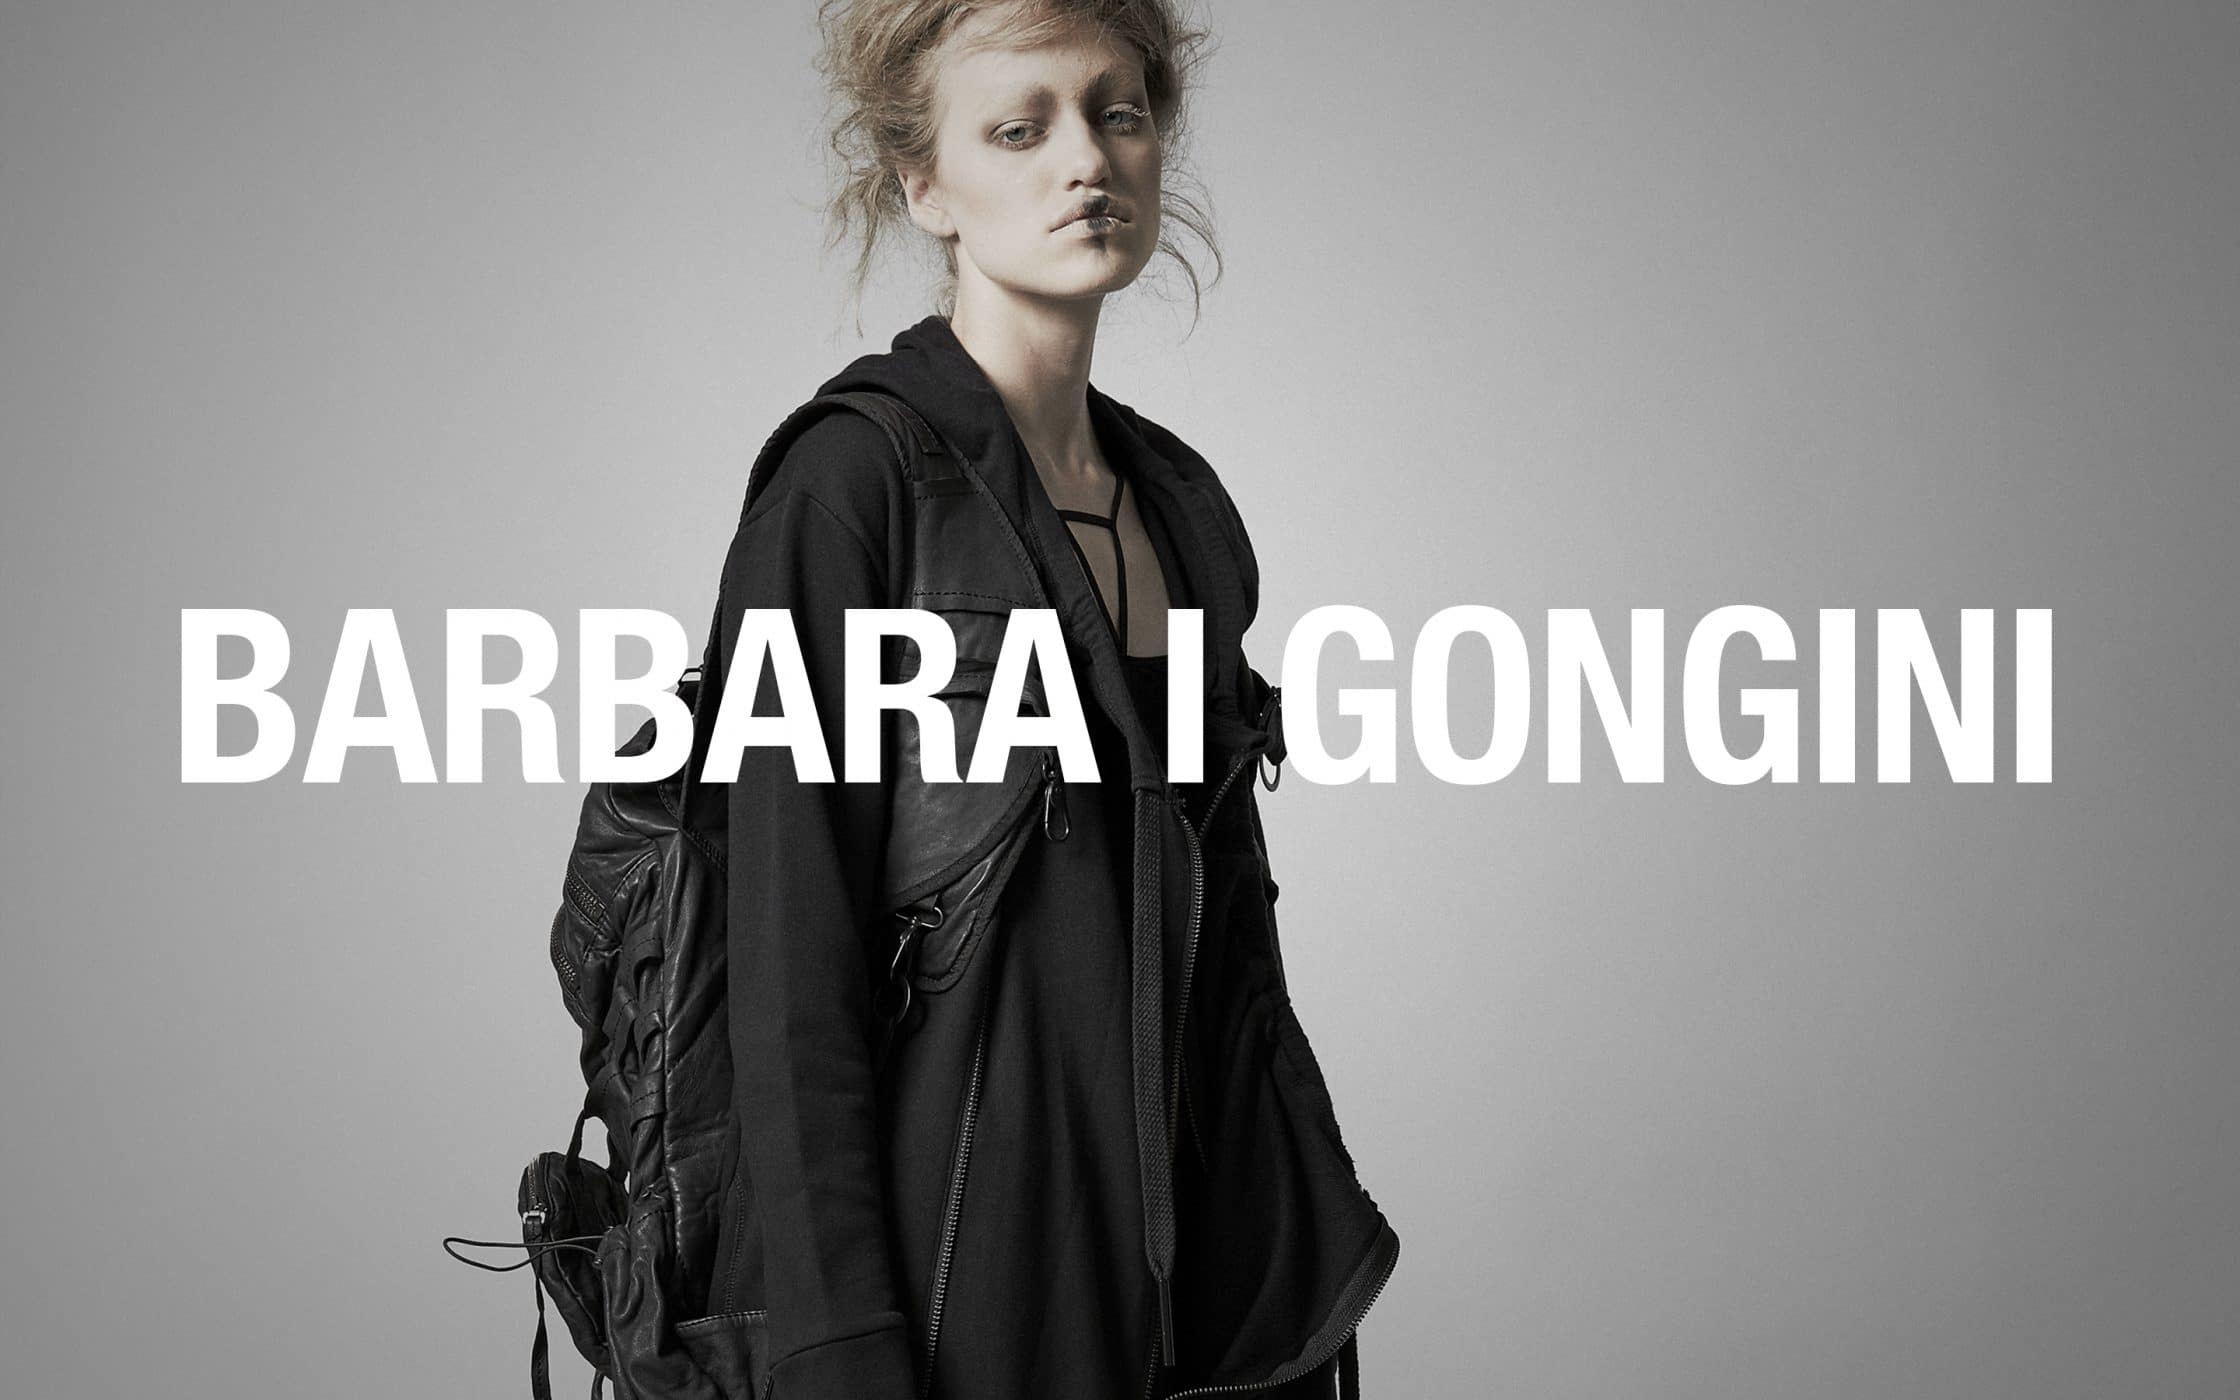 6759af29649 Rebel With A Cause  Barbara I Gongini And The Disruptive Nordic Fashion  Brand